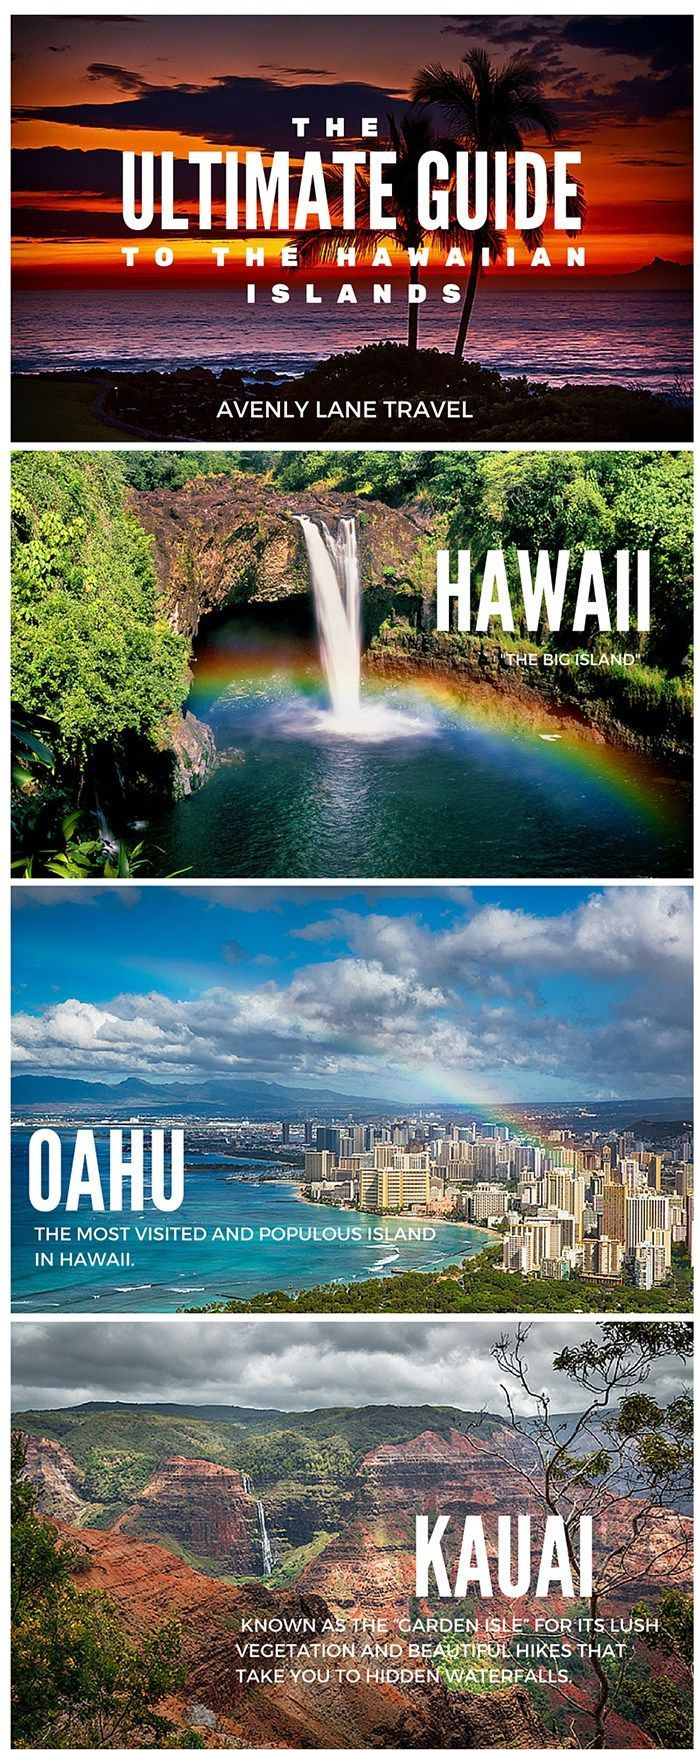 The Ultimate Guide to all of the Hawaiian Islands! Click through to Avenly Lane Travel to read more!